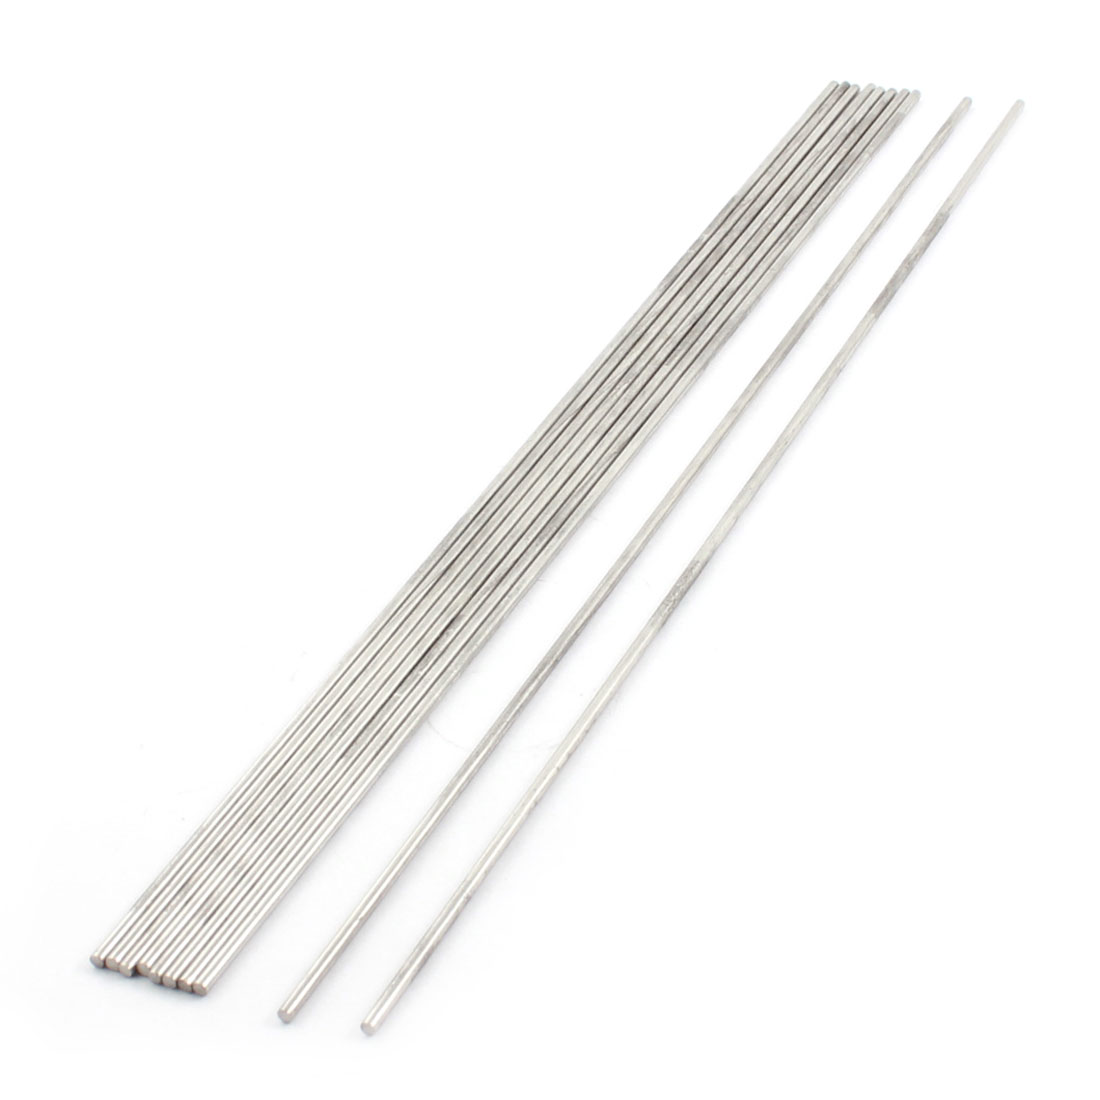 10PCS 300mm x 2.5mm Stainless Steel Straight Axle Round Rod for RC Model Car